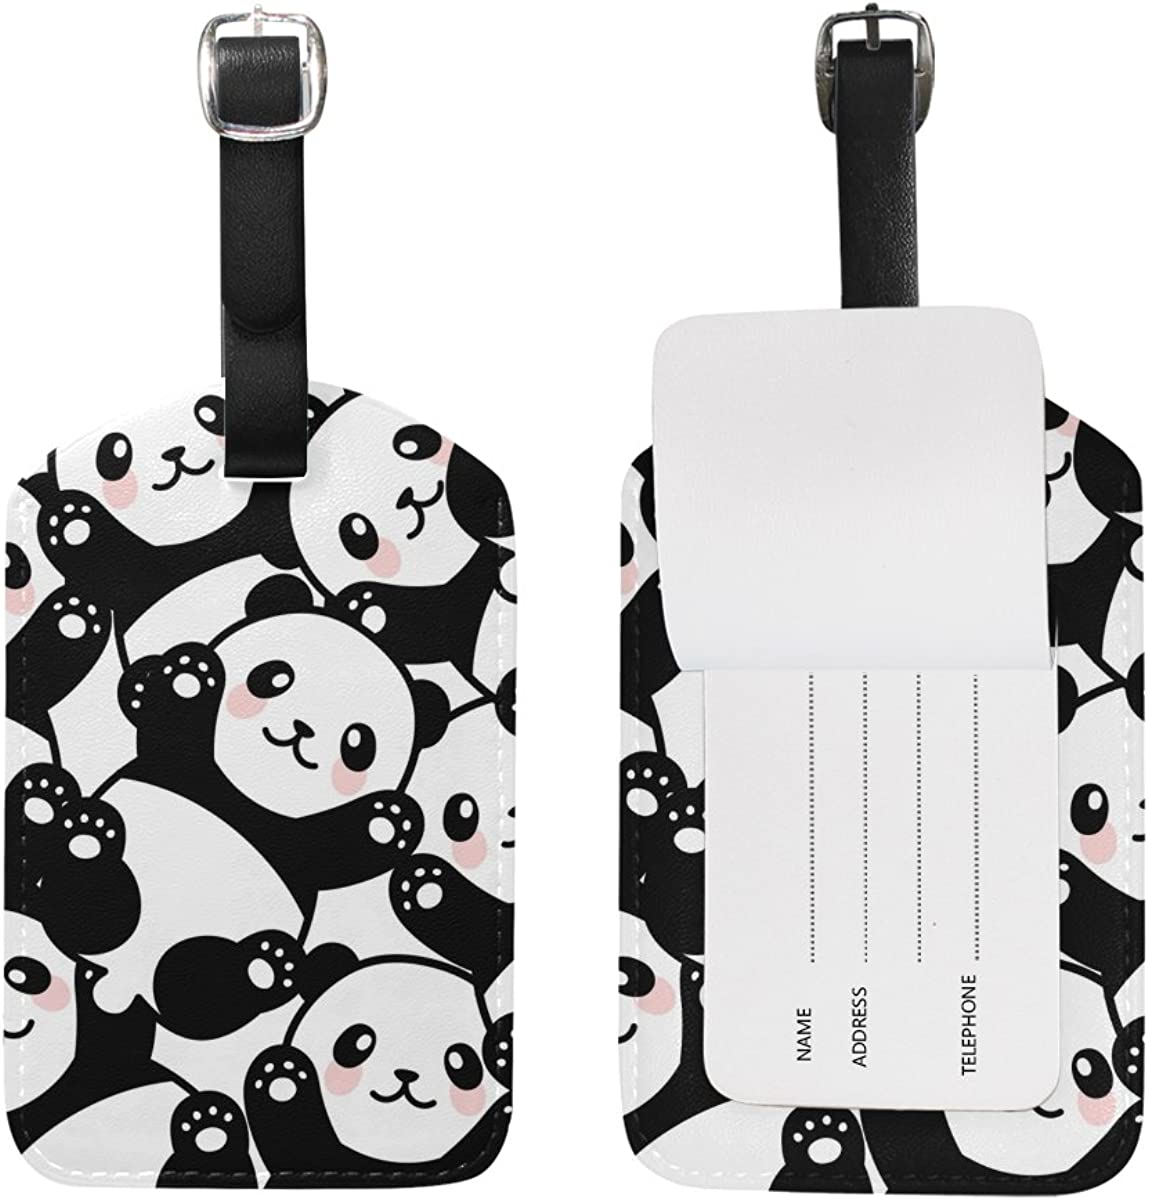 Saobao Travel Luggage Tag Cute Baby Pandas Collection PU Leather Baggage Travel ID